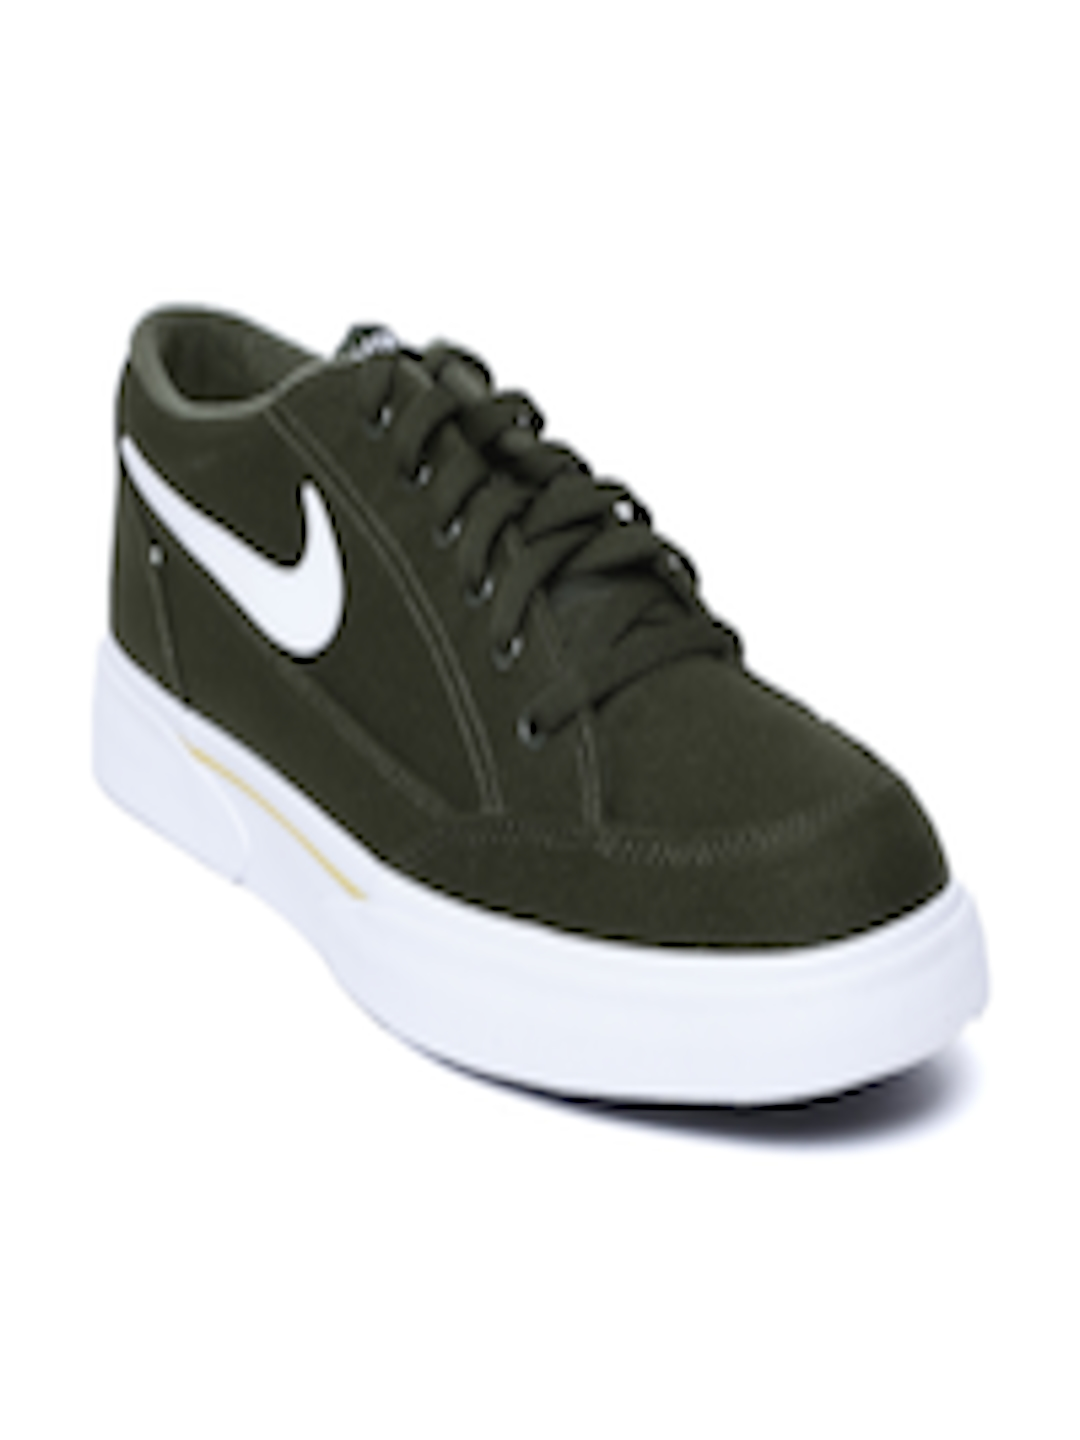 the latest 9d08a 981ed Buy Nike Men Olive Green GTS 16 Sneakers - Casual Shoes for Men 6676966    Myntra